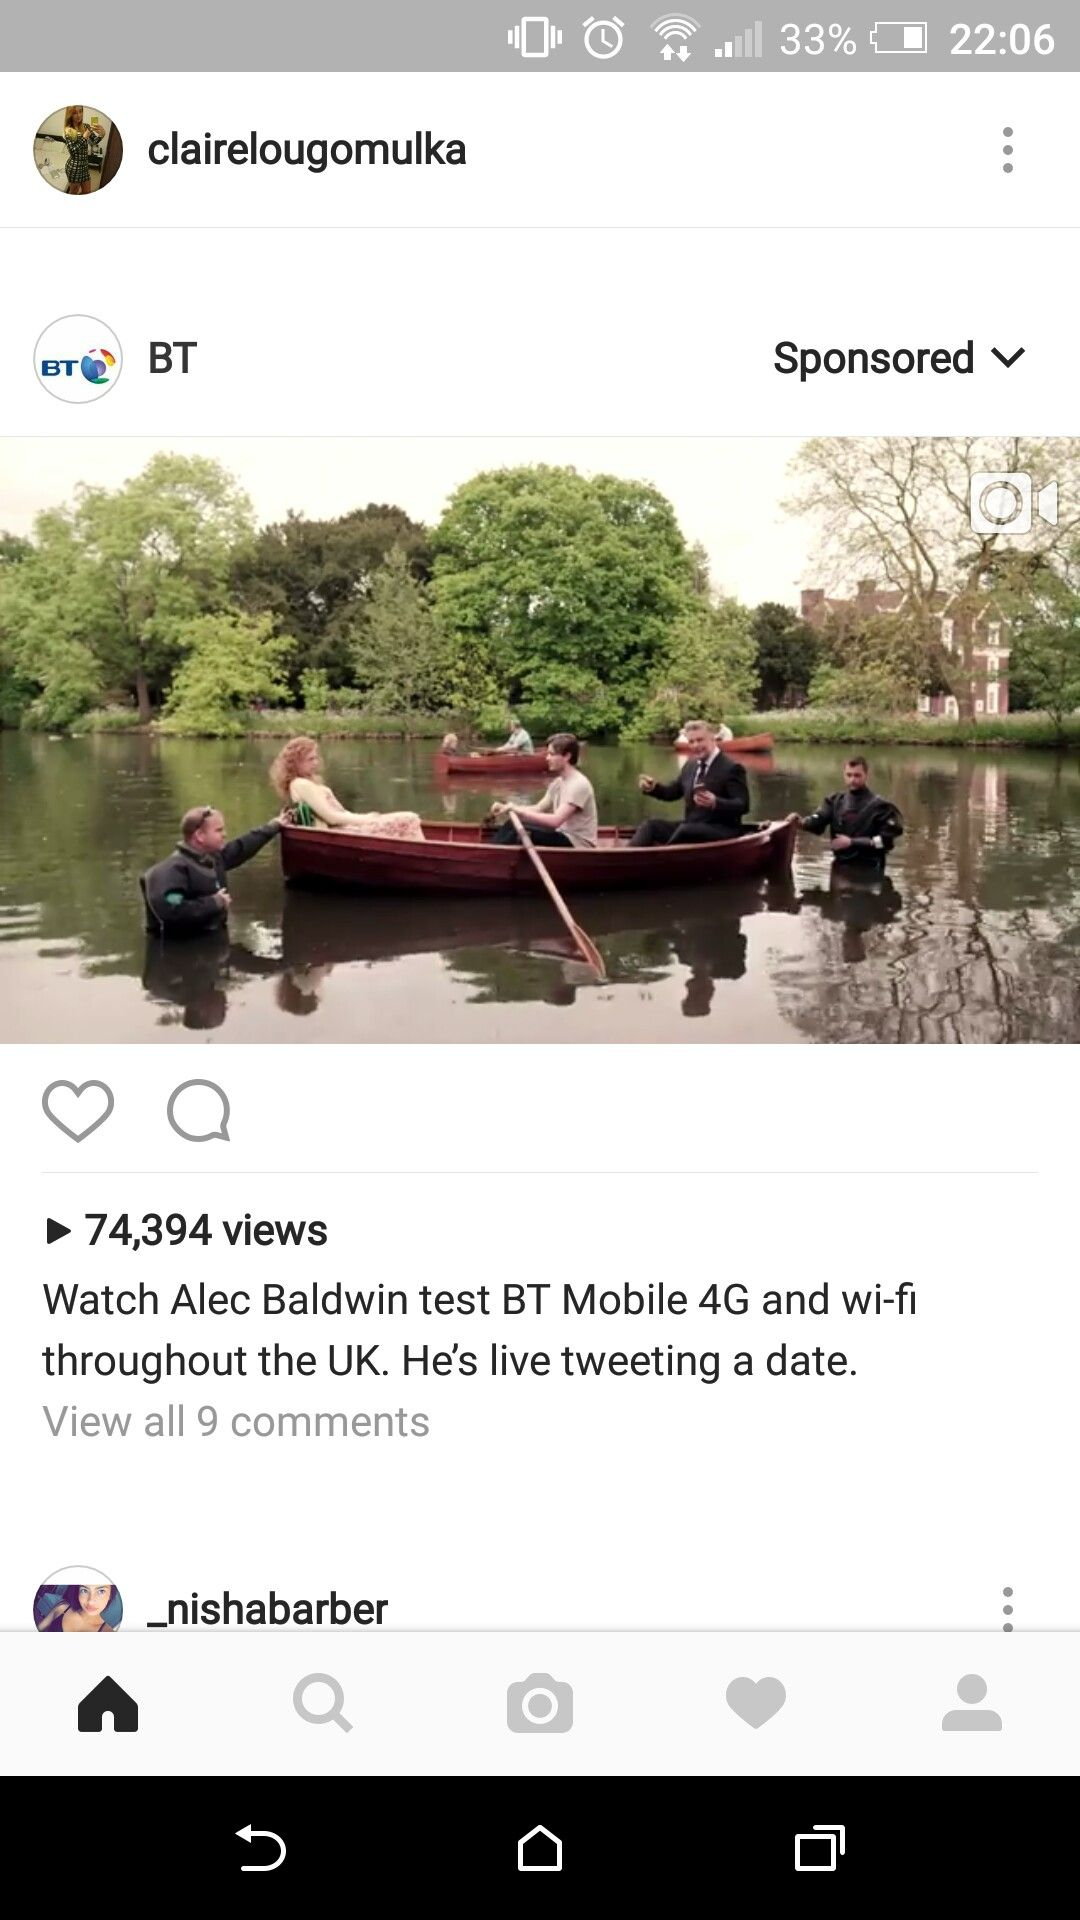 BT. Not relevant, dont use this company